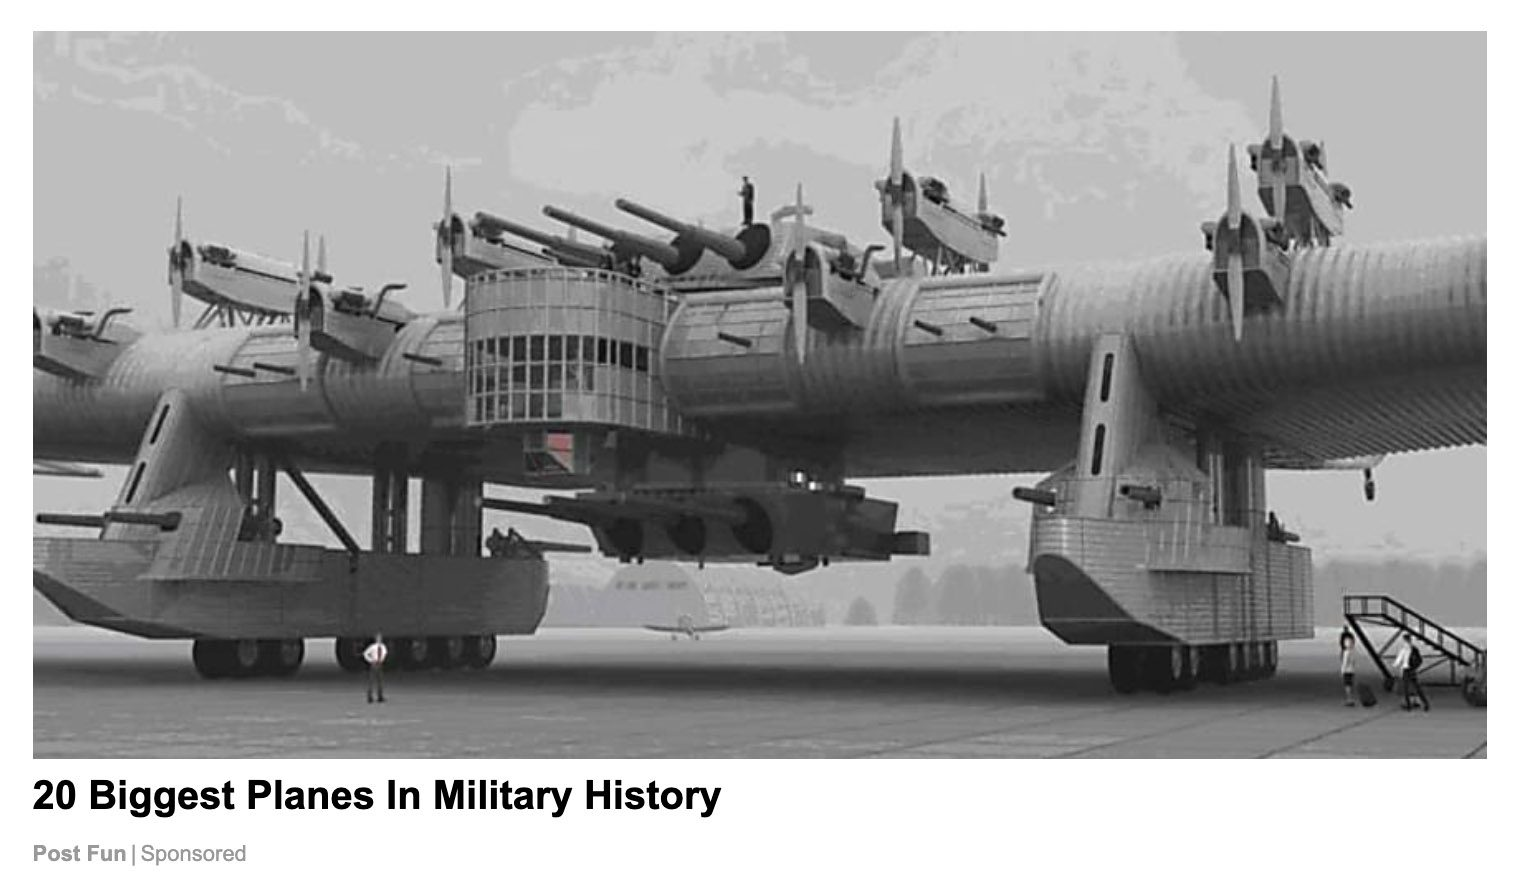 The Russian Kalinin K7 heavy bomber was featured in quite a few photographs, but they were artist renders.